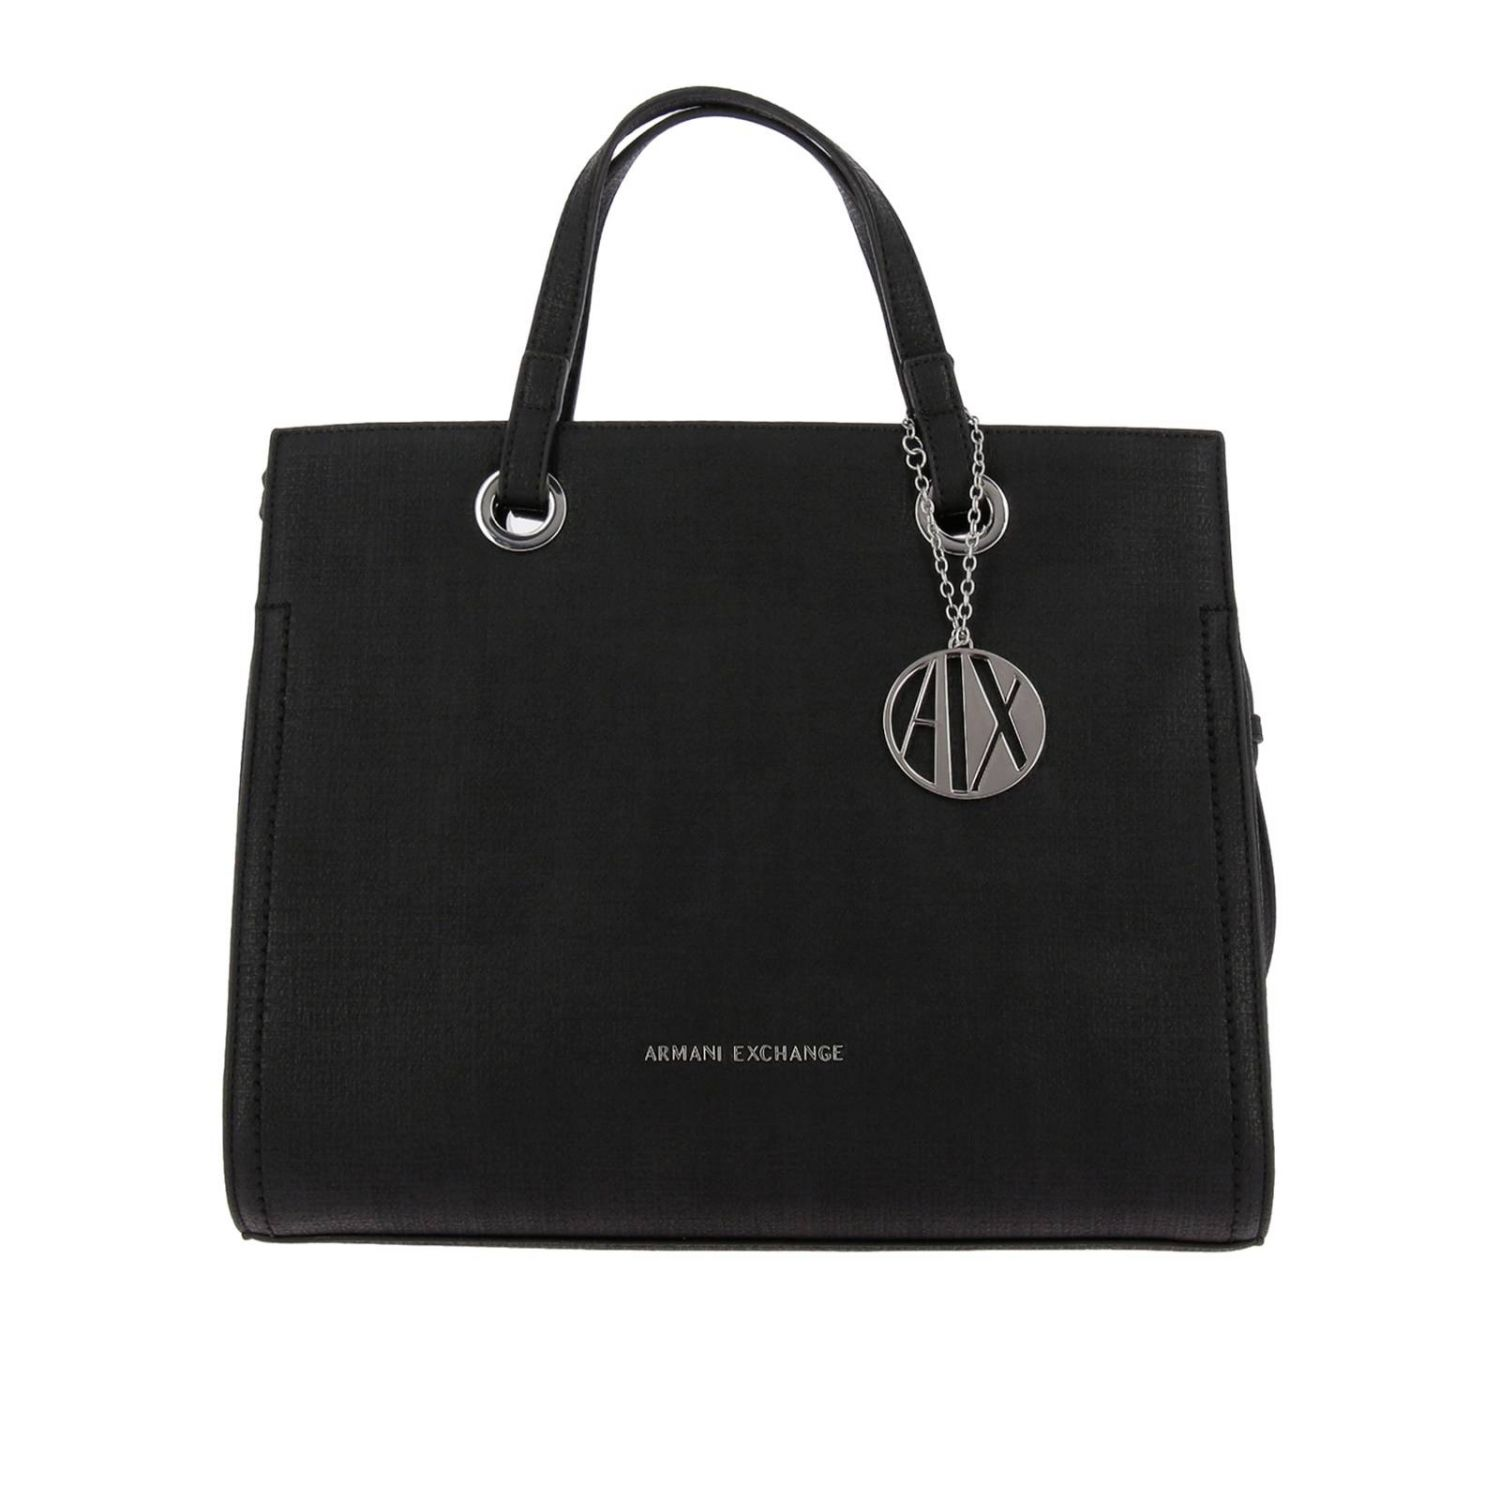 Handbag Shoulder Bag Women Armani Exchange 8425485